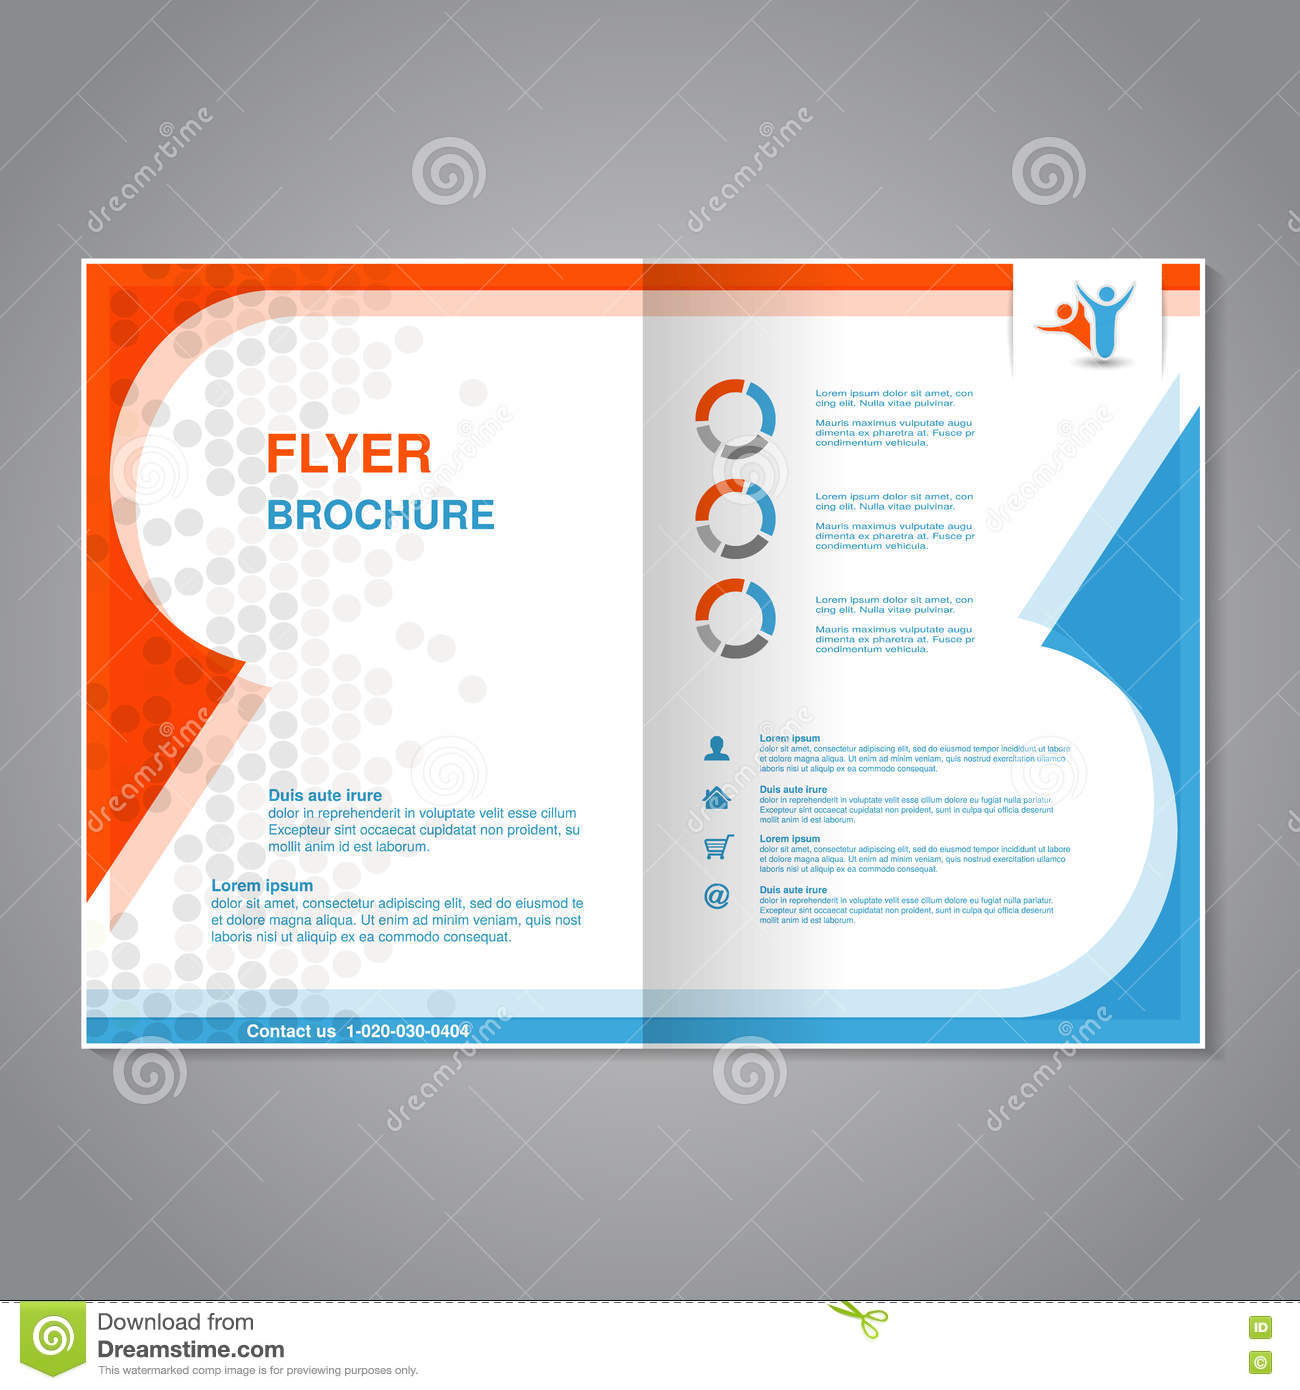 Poster design layout templates - Modern Brochure Abstract Flyer With Simple Dotted Design Layout Template Aspect Ratio For